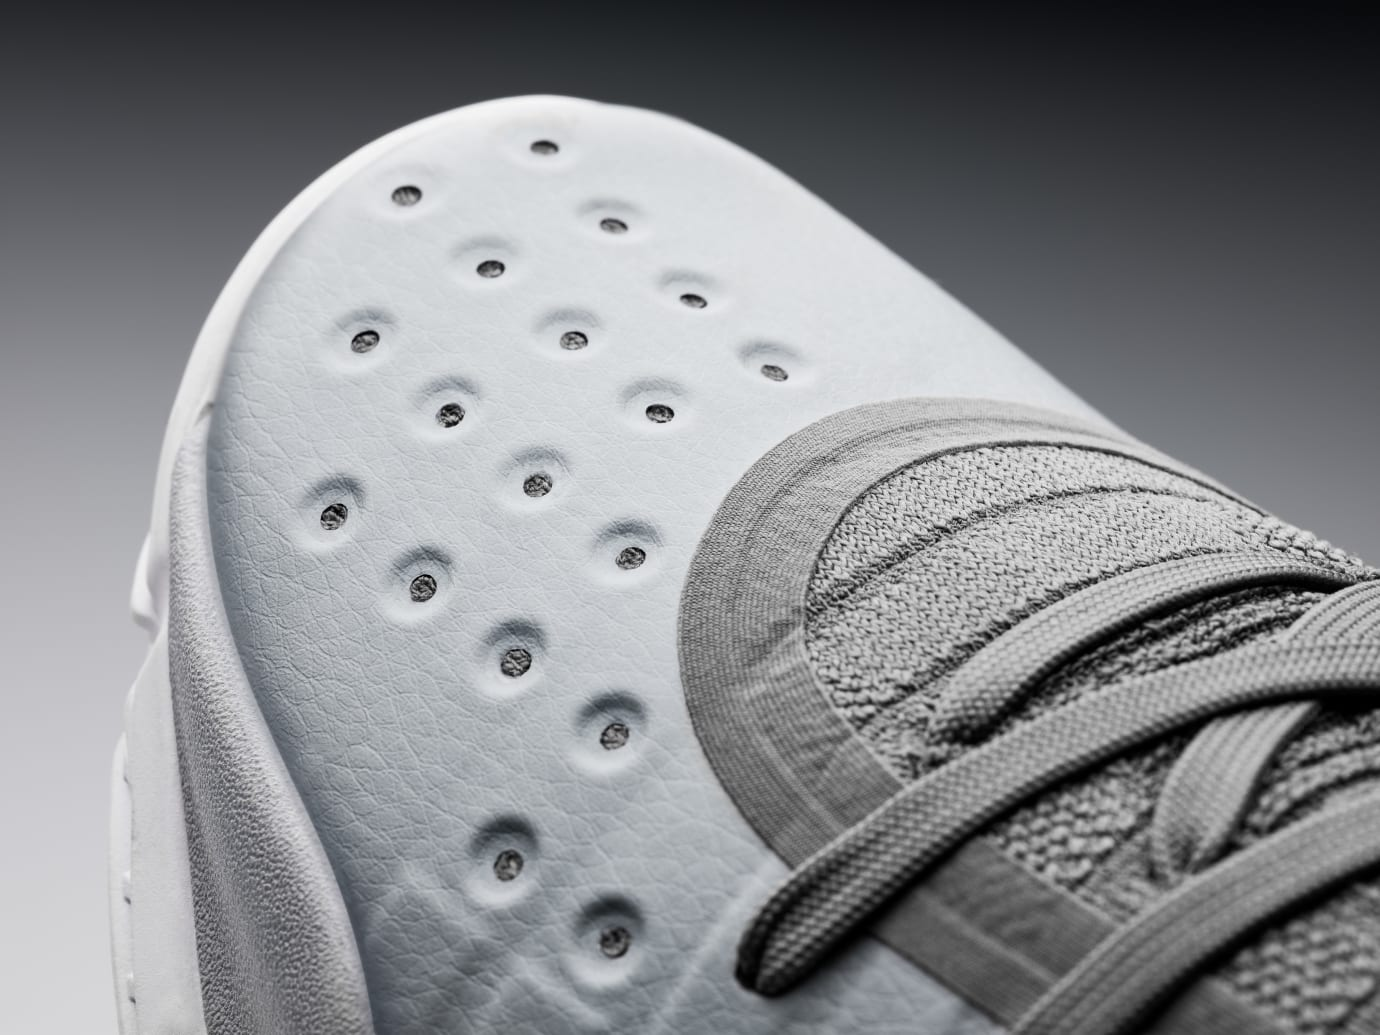 f19e3a54074c Image via Under Armour Under Armour Curry 4  More Buckets  1298306-107  (Detail 4)